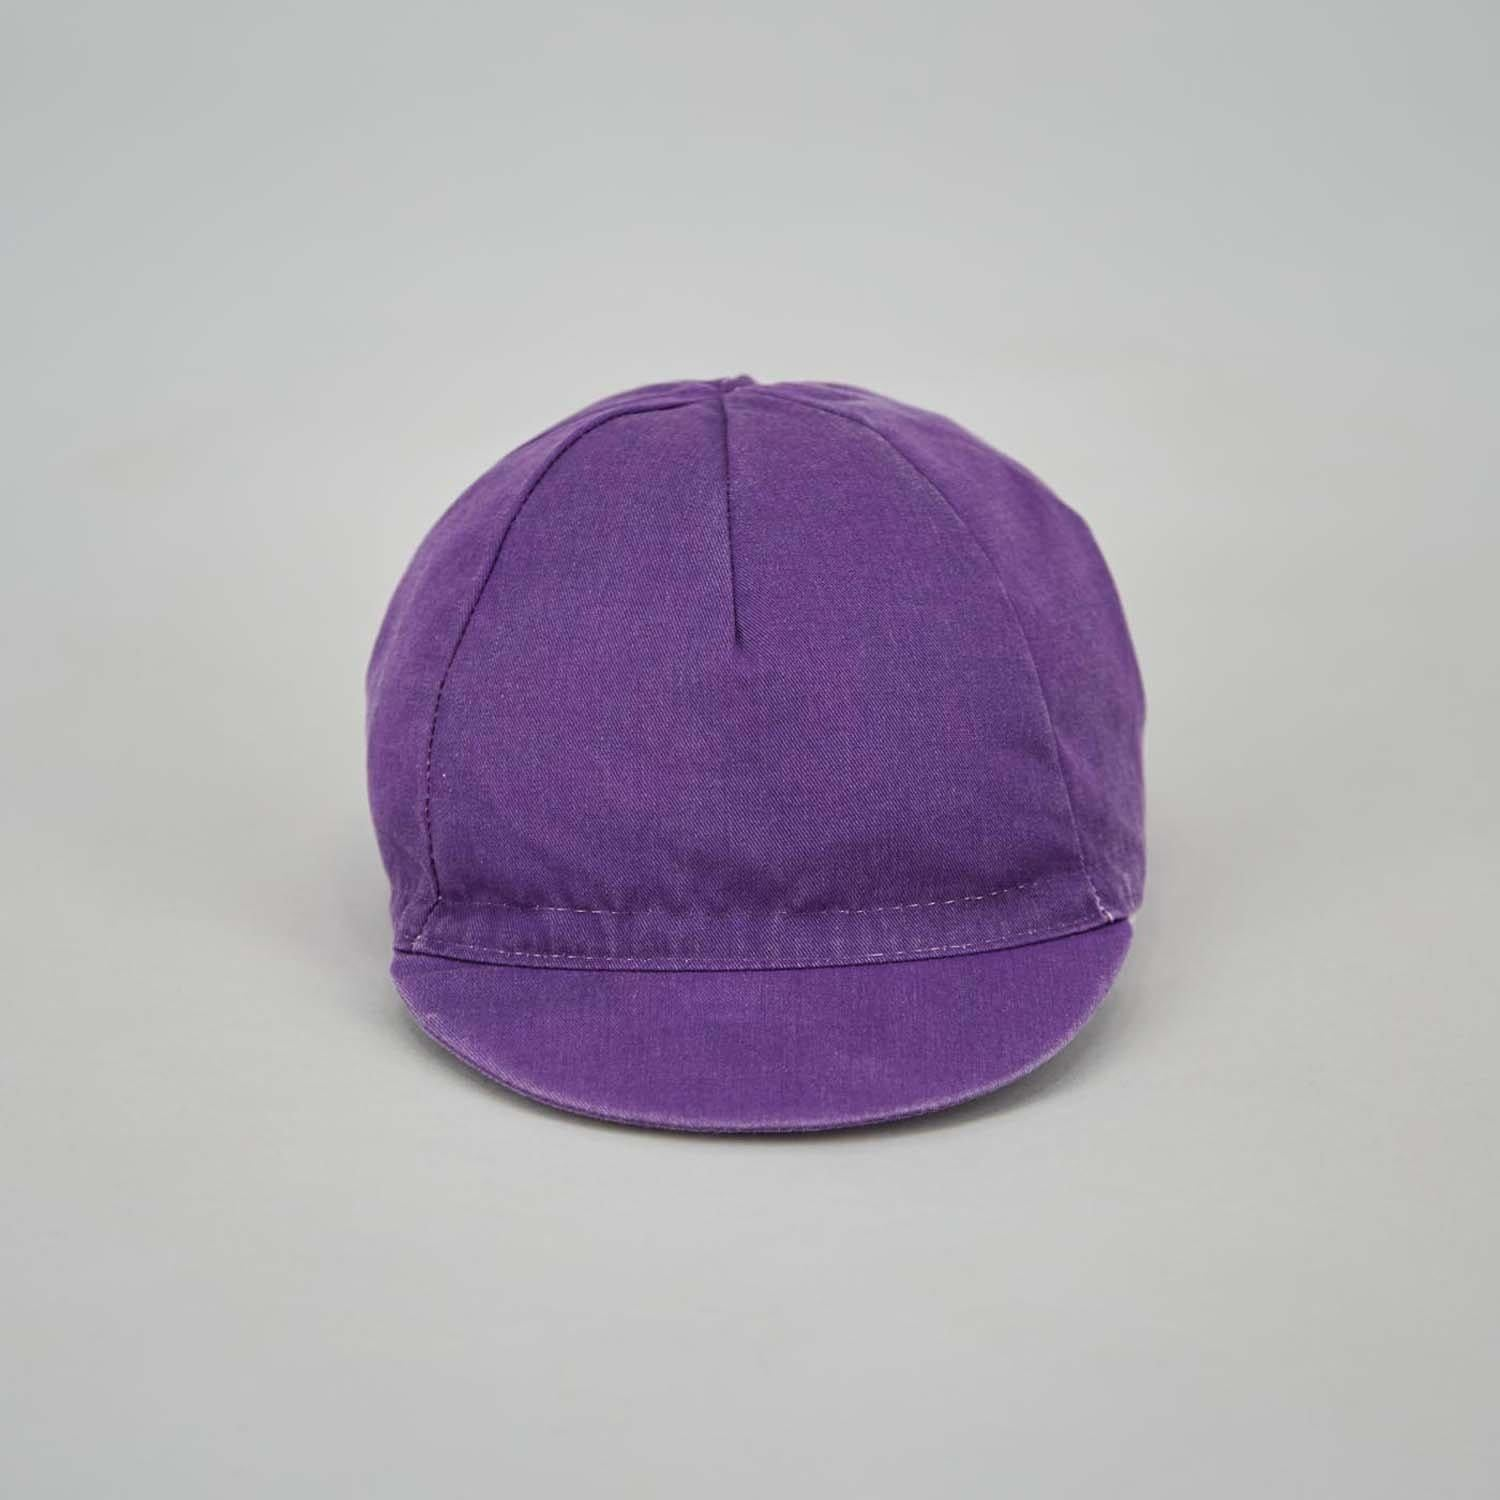 Sportful-Sportful Matchy Cycling Cap-Violet-UNI-SF210385088-saddleback-elite-performance-cycling